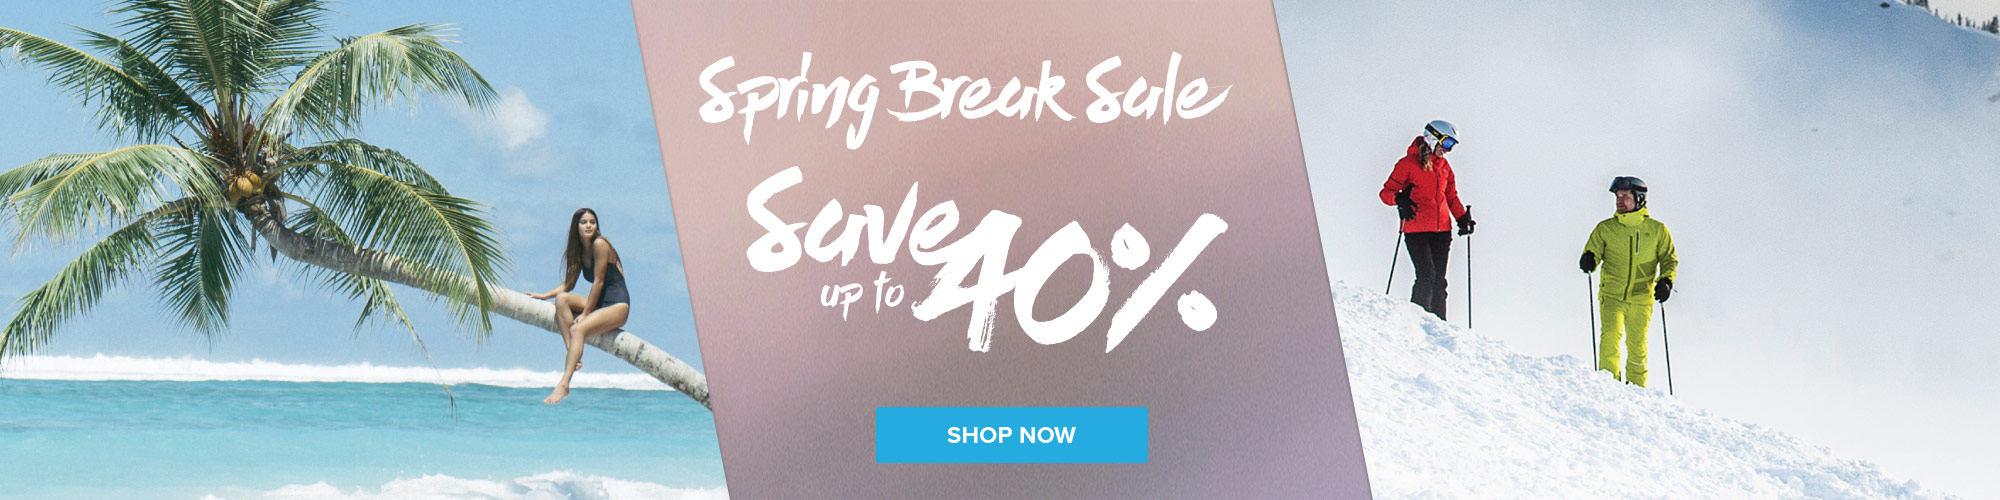 Spring Break Sale - Shop Now